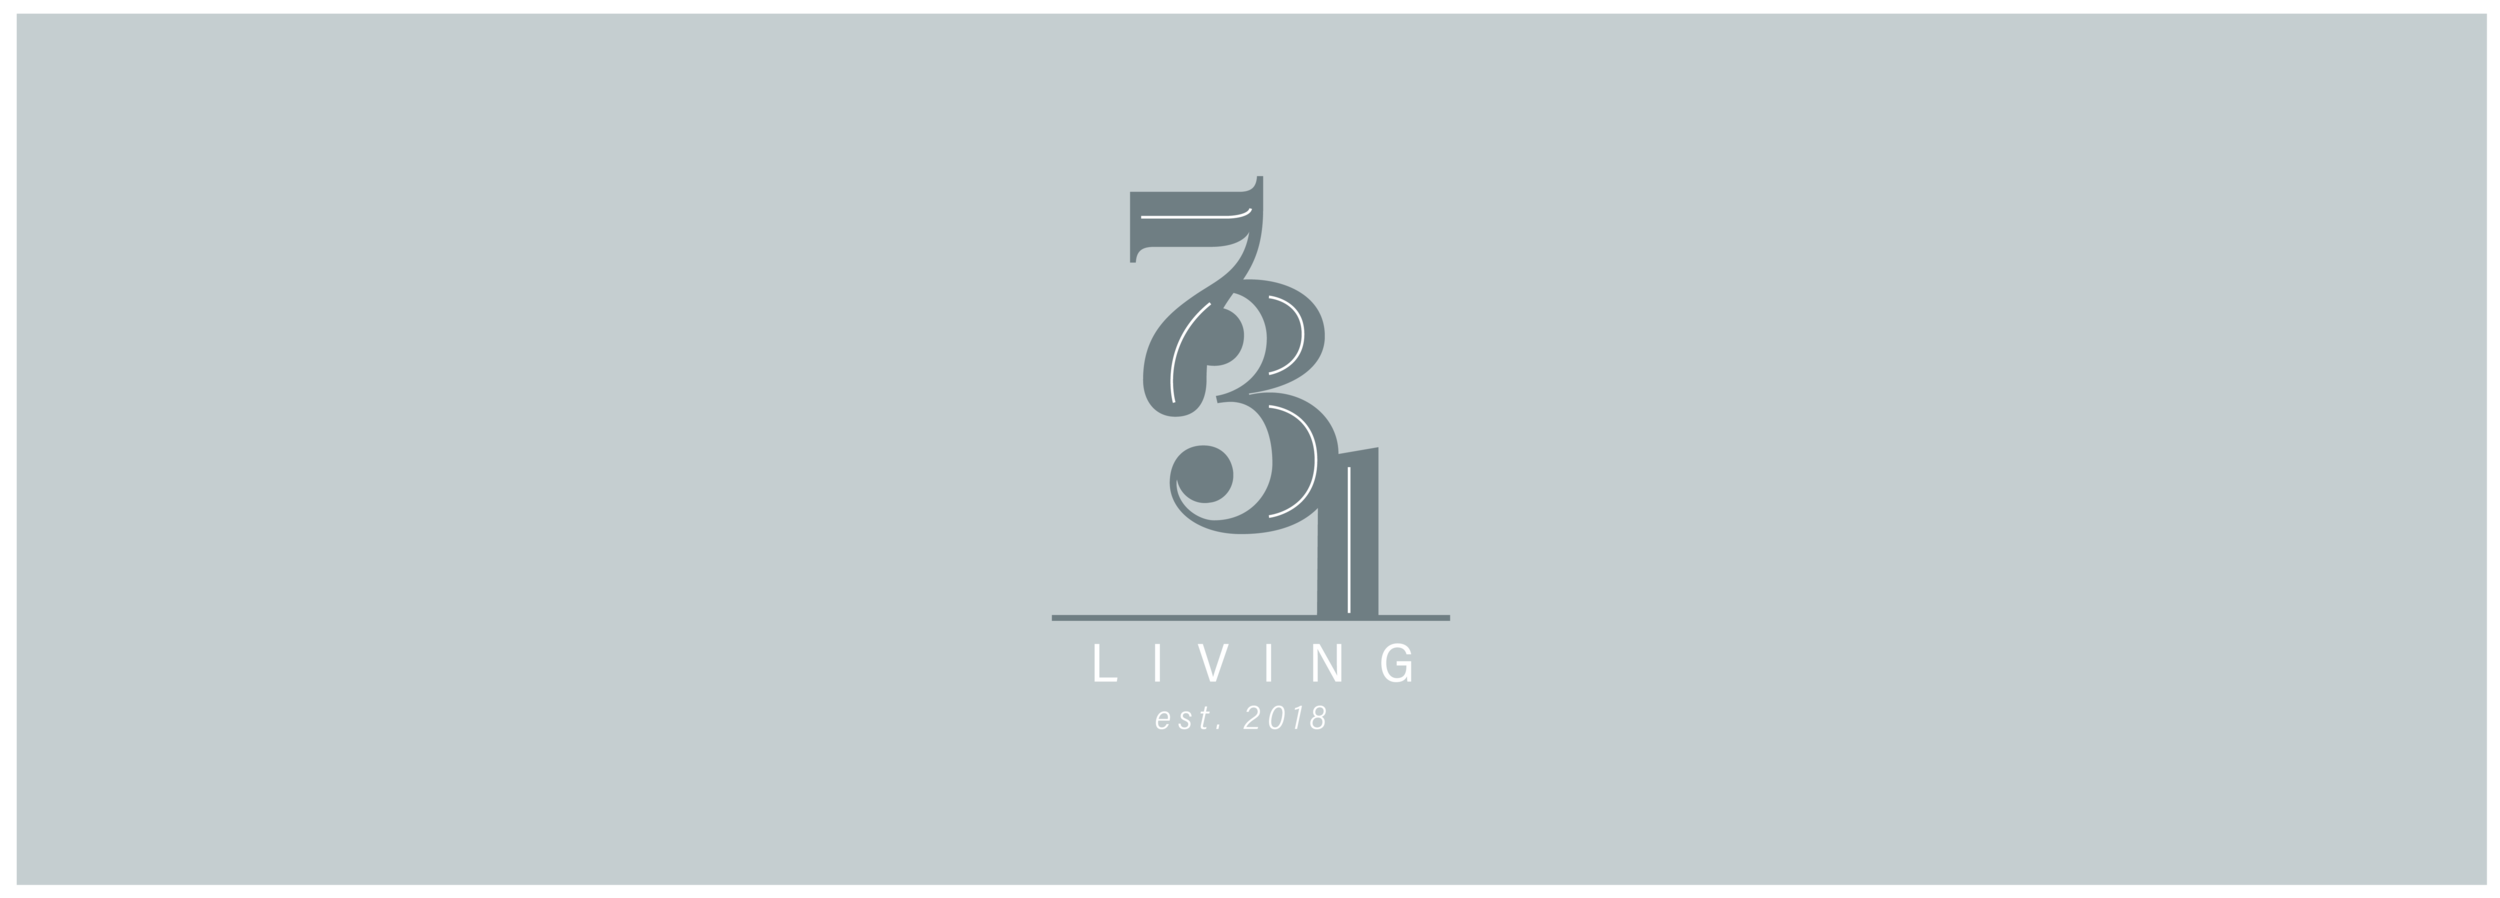 731 Living Website Images-03.png